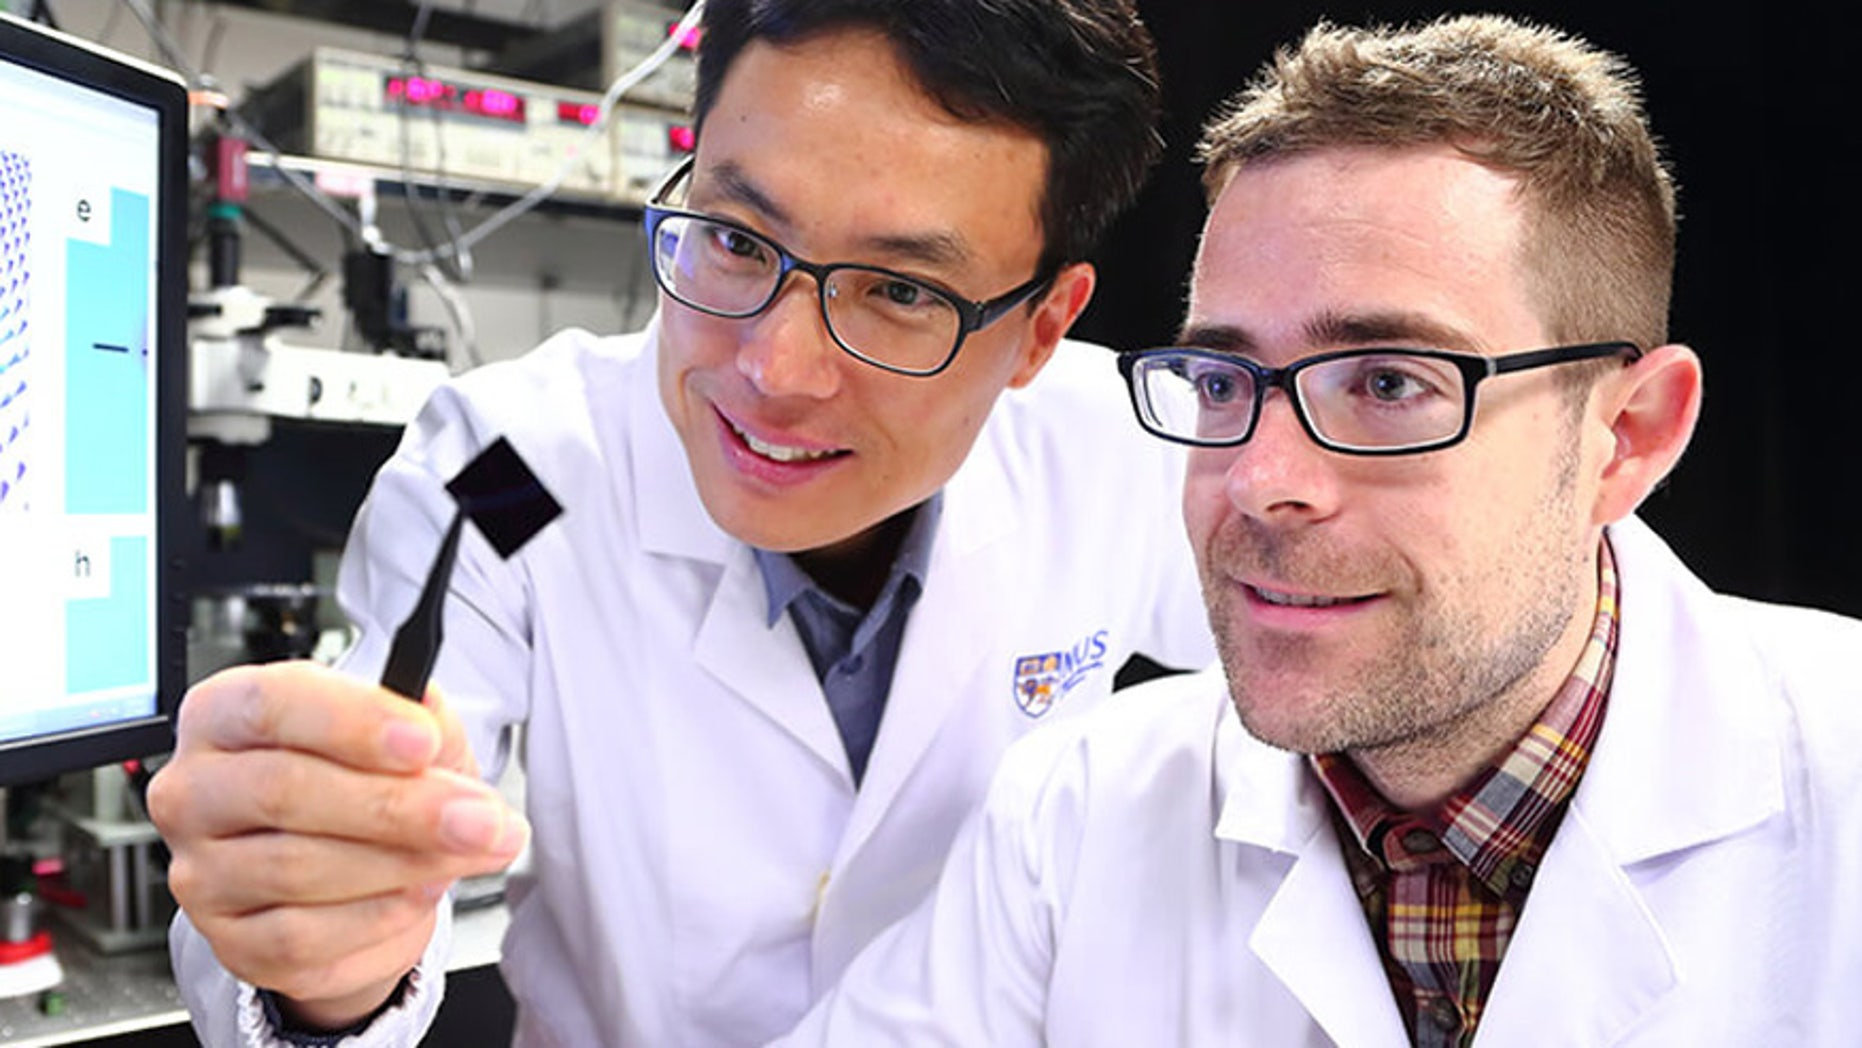 Associate Professor Yang Hyunsoo (left) and Dr Shawn Pollard (right), from the Department of Electrical and Computer Engineering at the NUS Faculty of Engineering (Photo credit: Siew Shawn Yohanes)